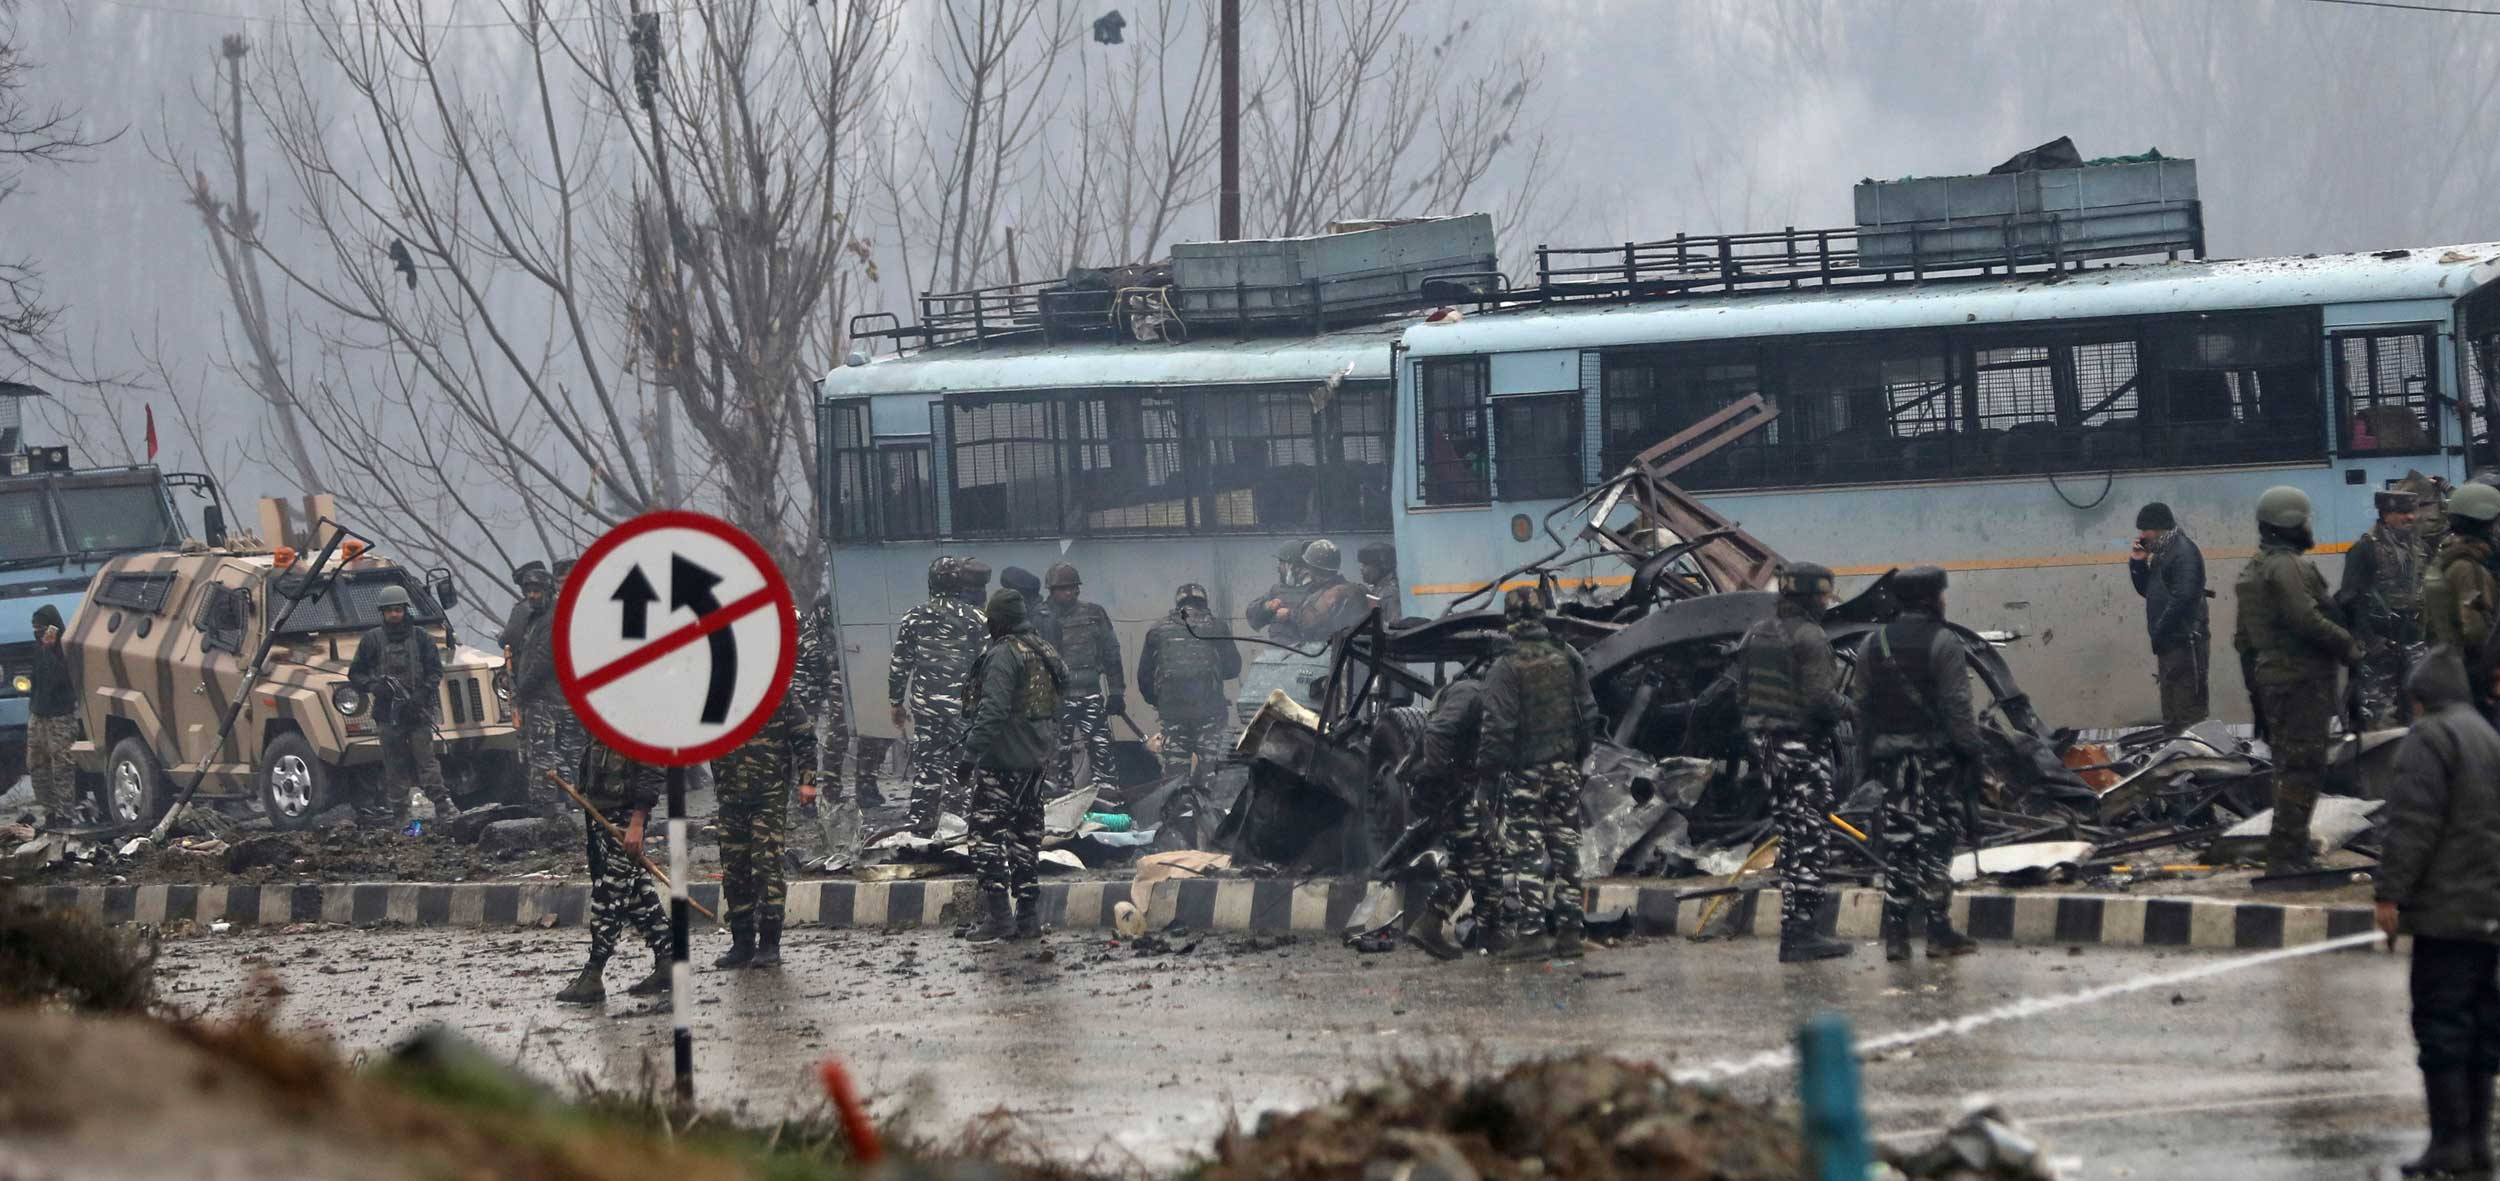 Soldiers stand by the wreckage of a bus after an explosion in Pampore on Thursday.